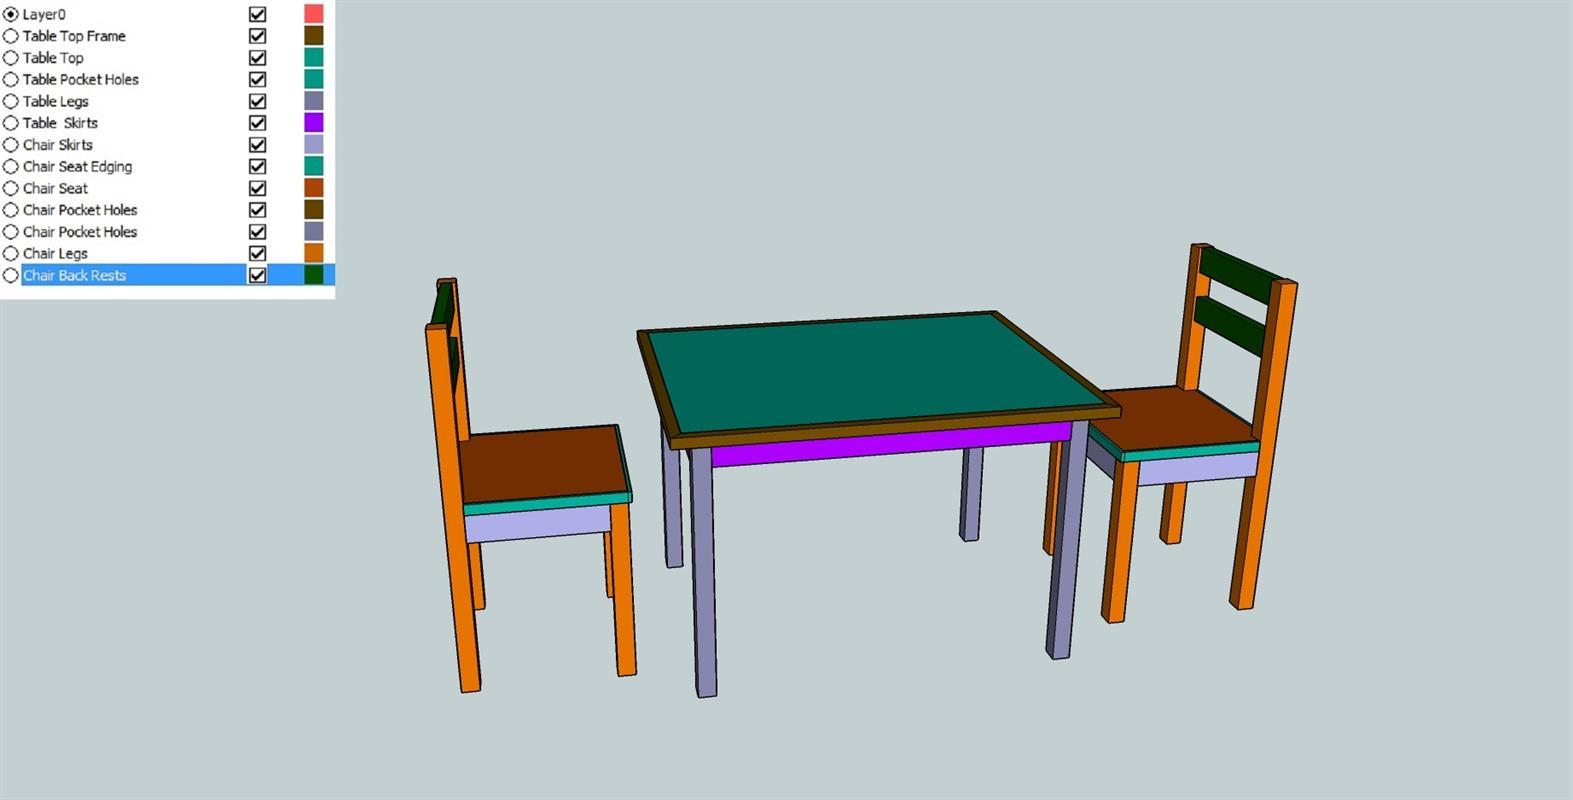 childs-table-chair-aug-2015-colored-layers-2-with-chart